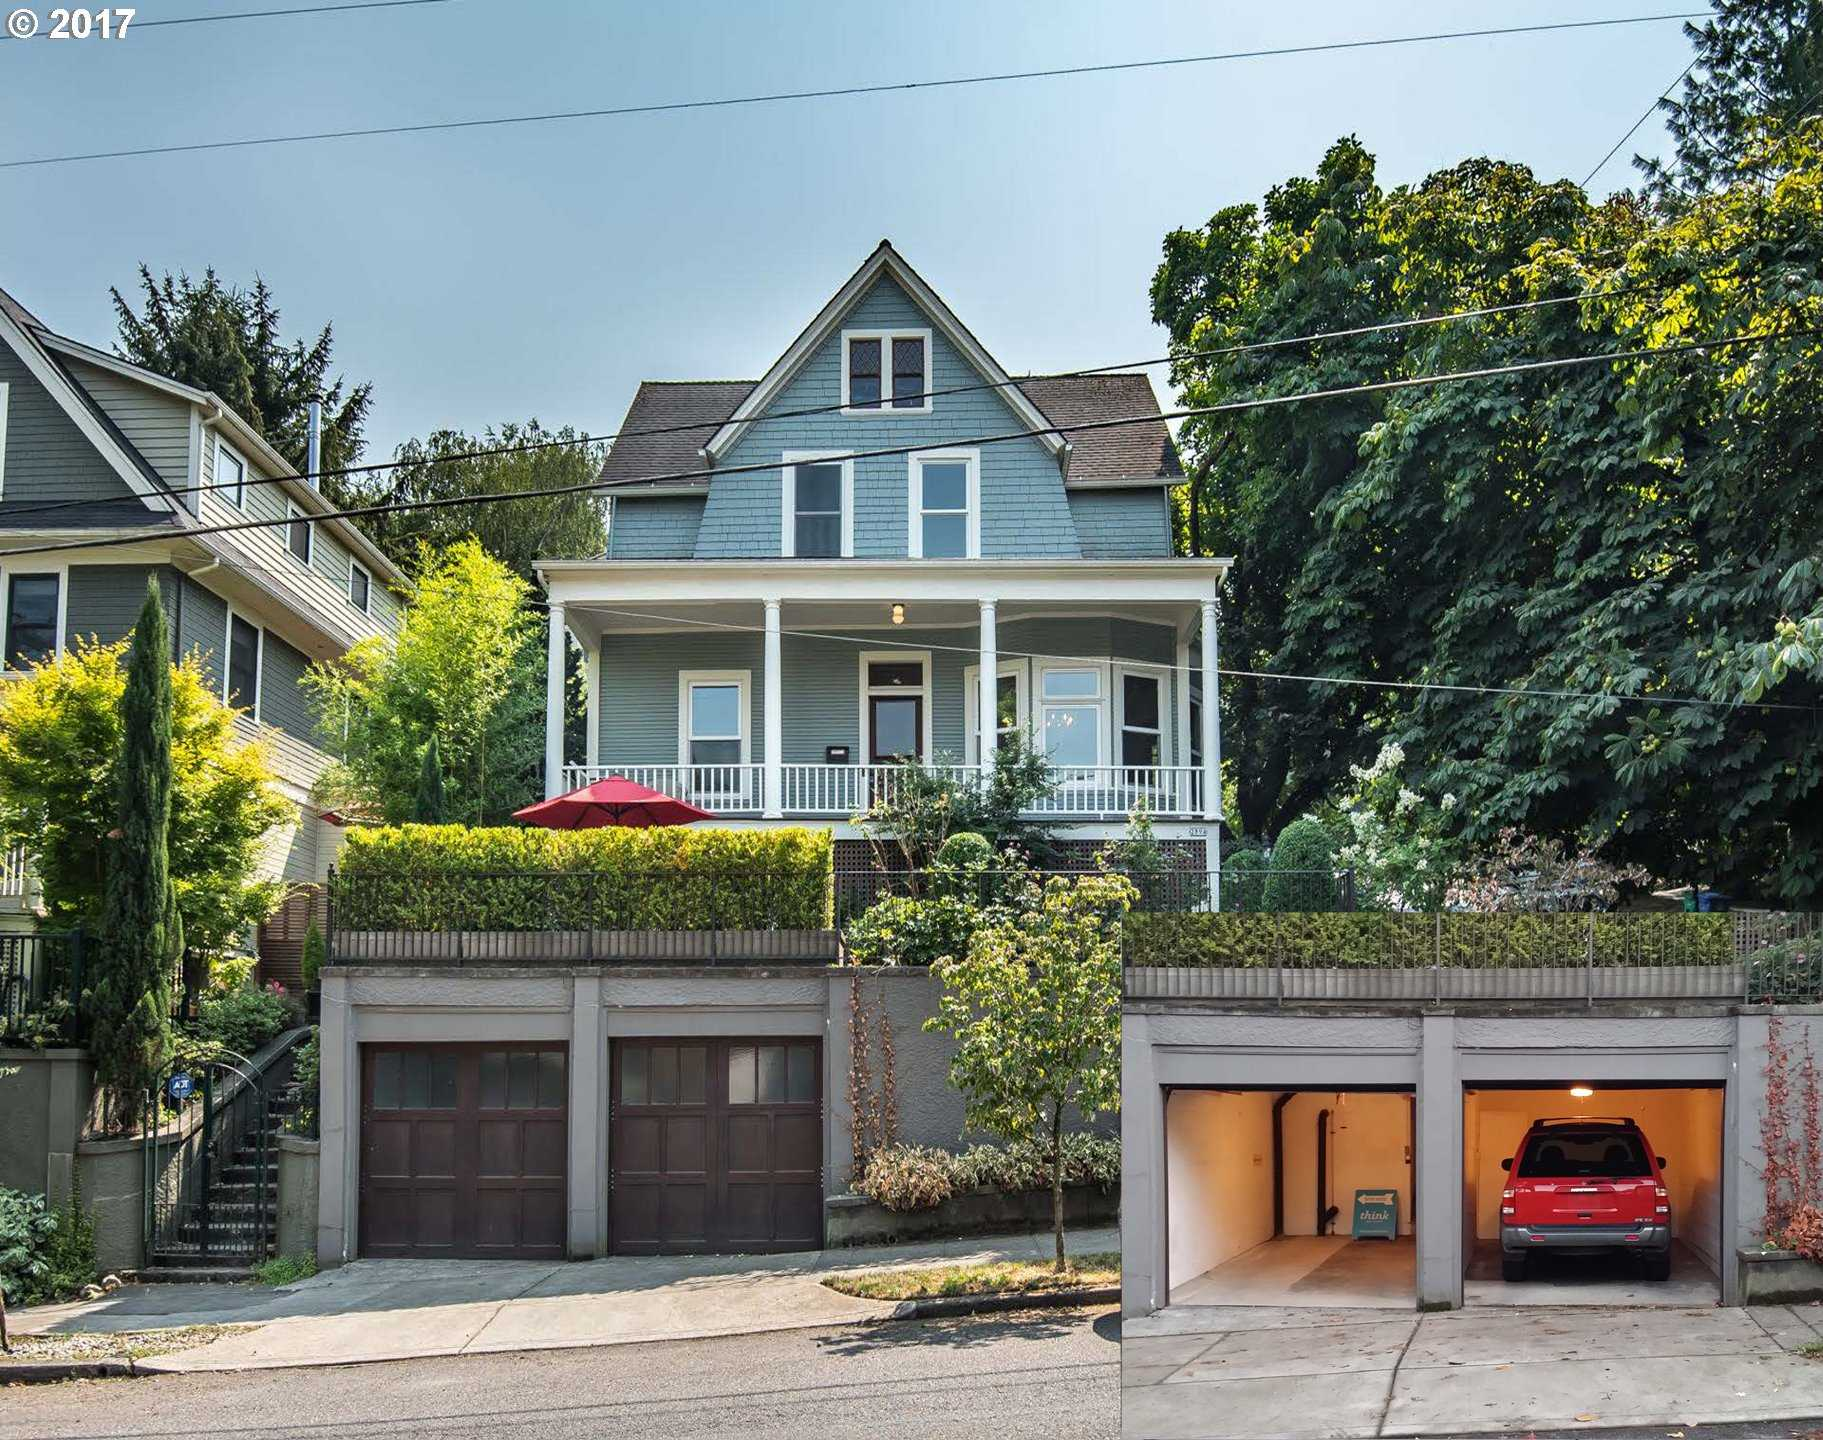 $979,900 - 4Br/3Ba -  for Sale in Upper Alphabet/nw District, Portland